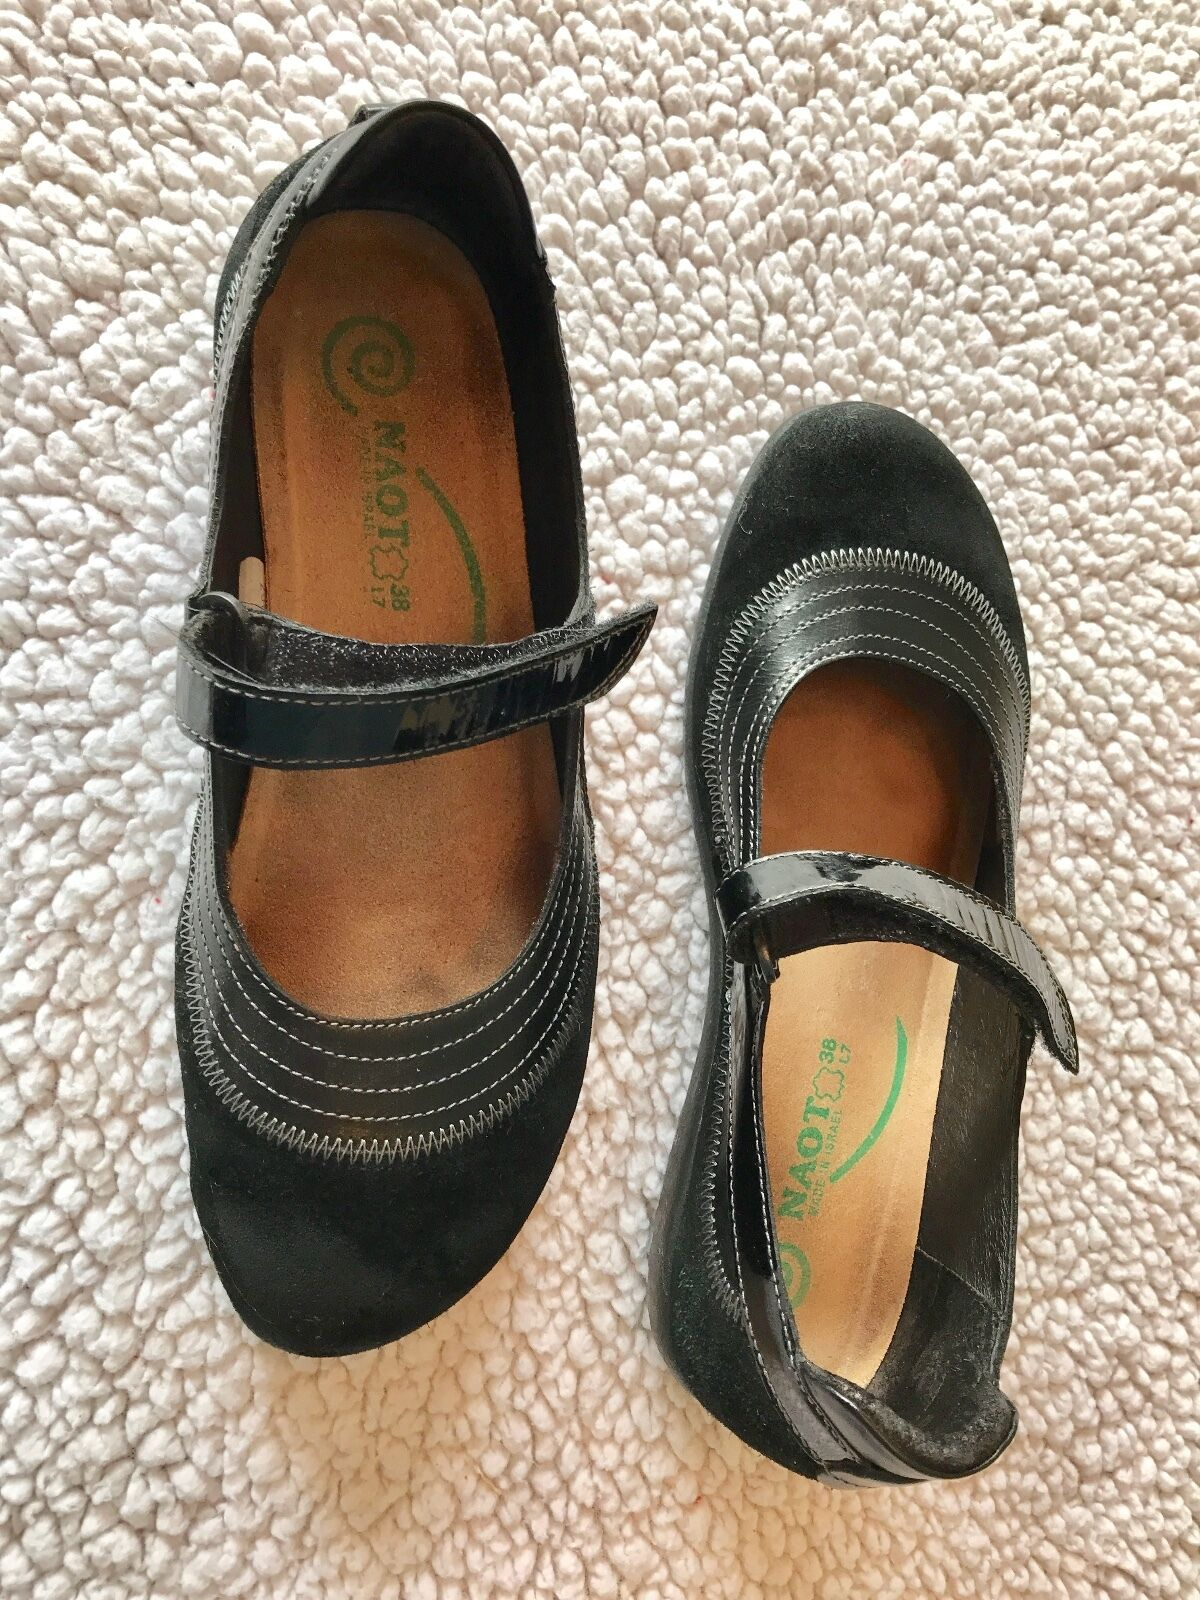 schwarz schuhe, suede, Naots, MaryJane, 7/38, pre-owned, very good condition